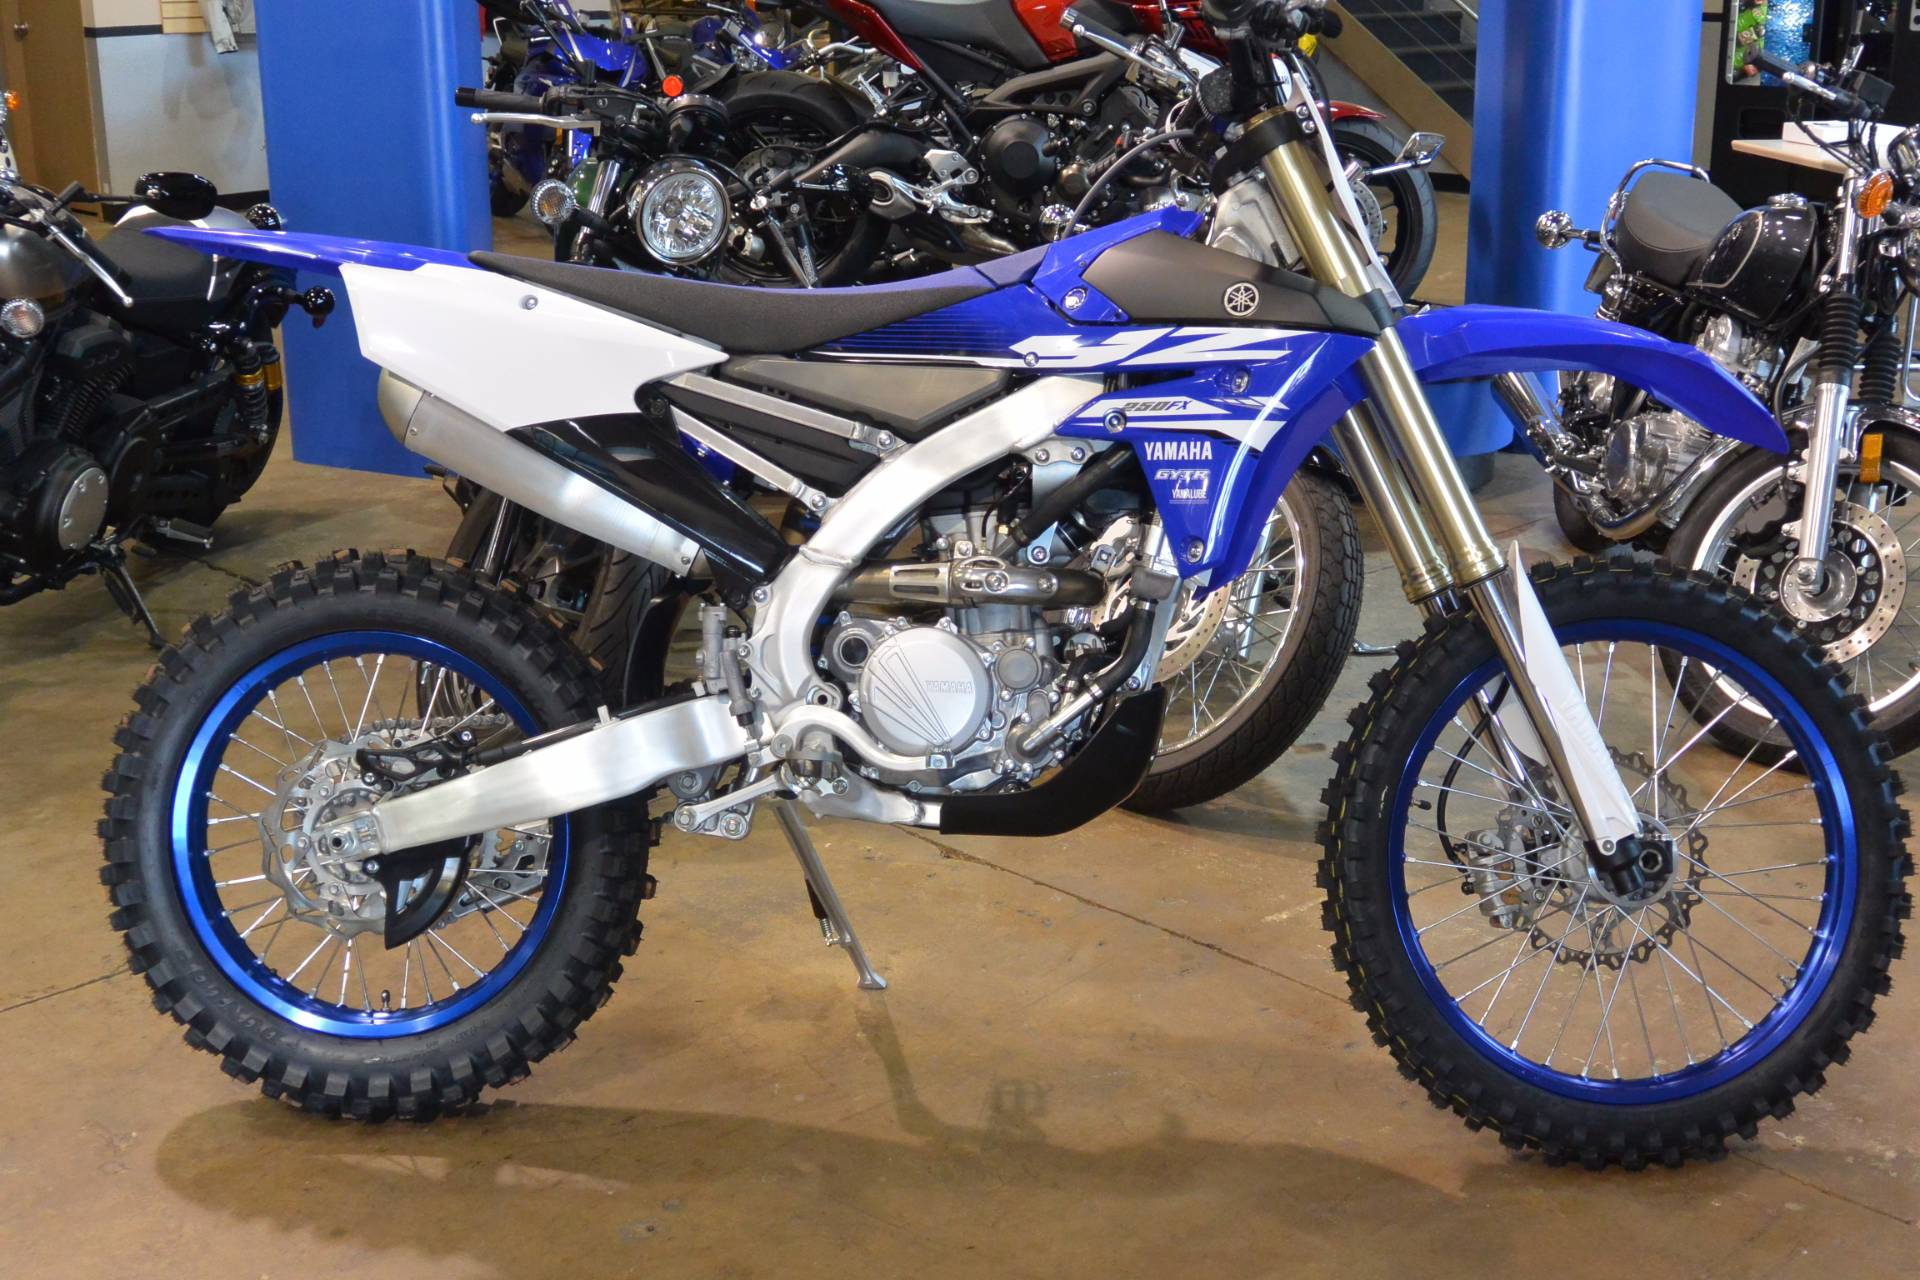 2018 yamaha yz250fx motorcycles denver colorado d006402 for Yamaha installment financing